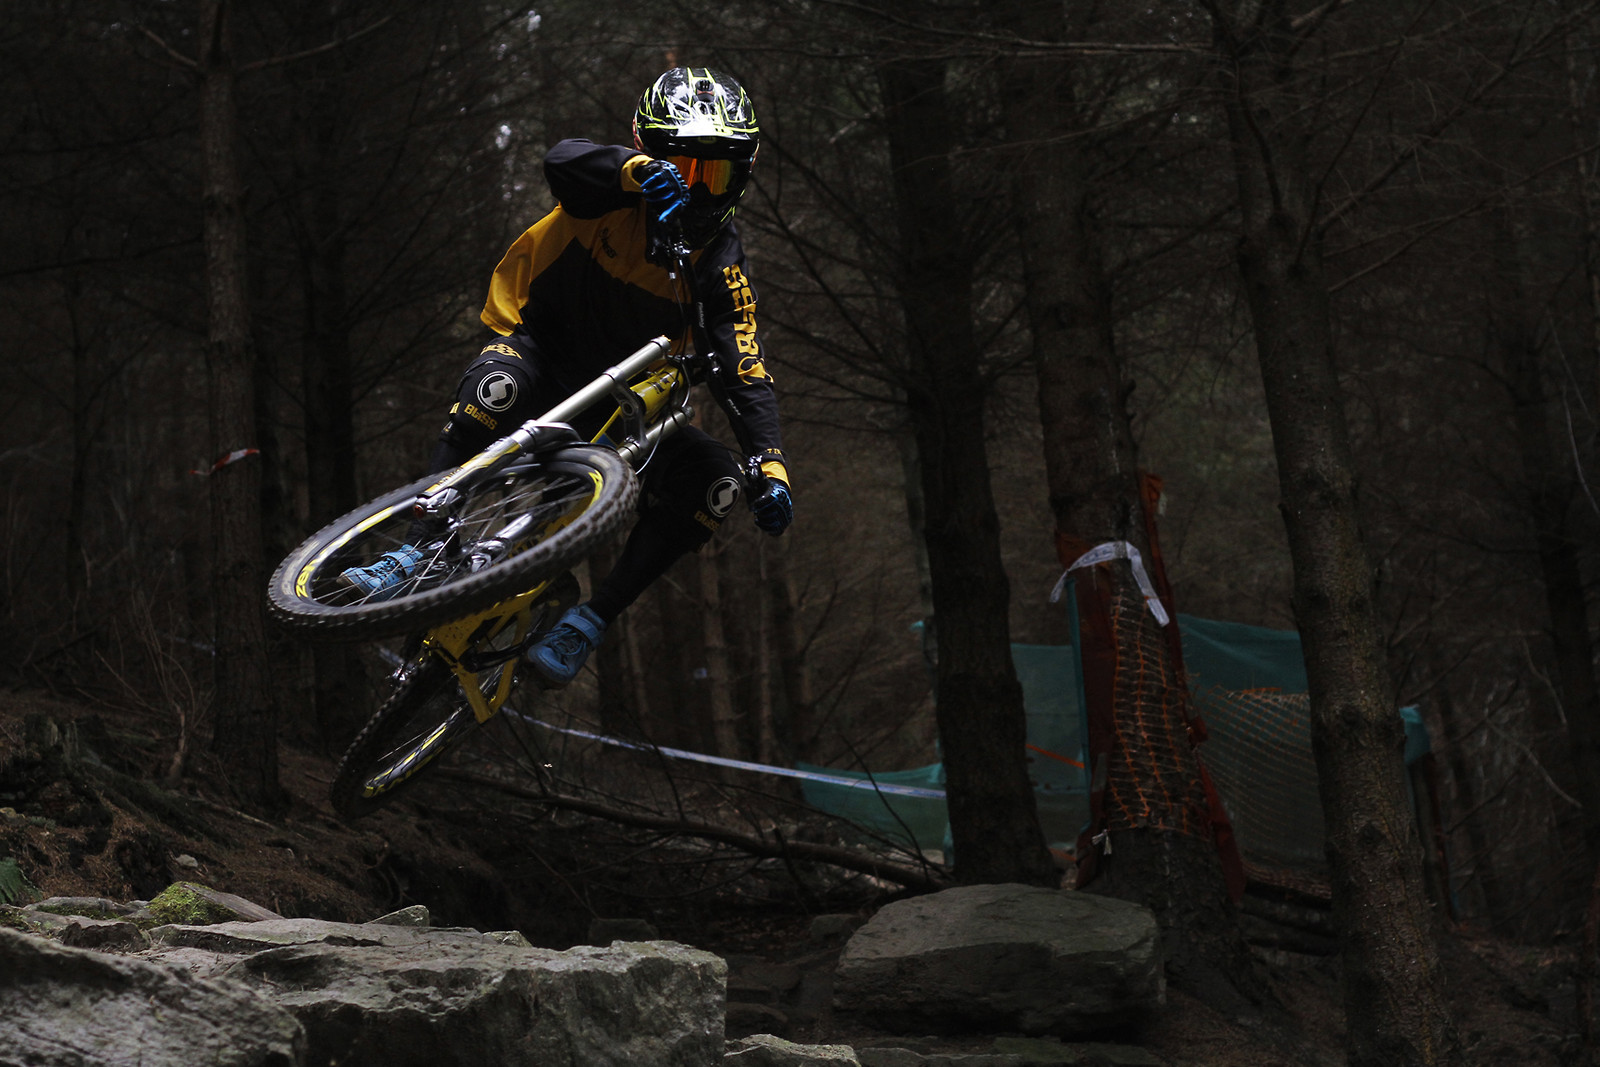 Young gun James Purvis pulling shapes - CaldwellVisuals - Mountain Biking Pictures - Vital MTB